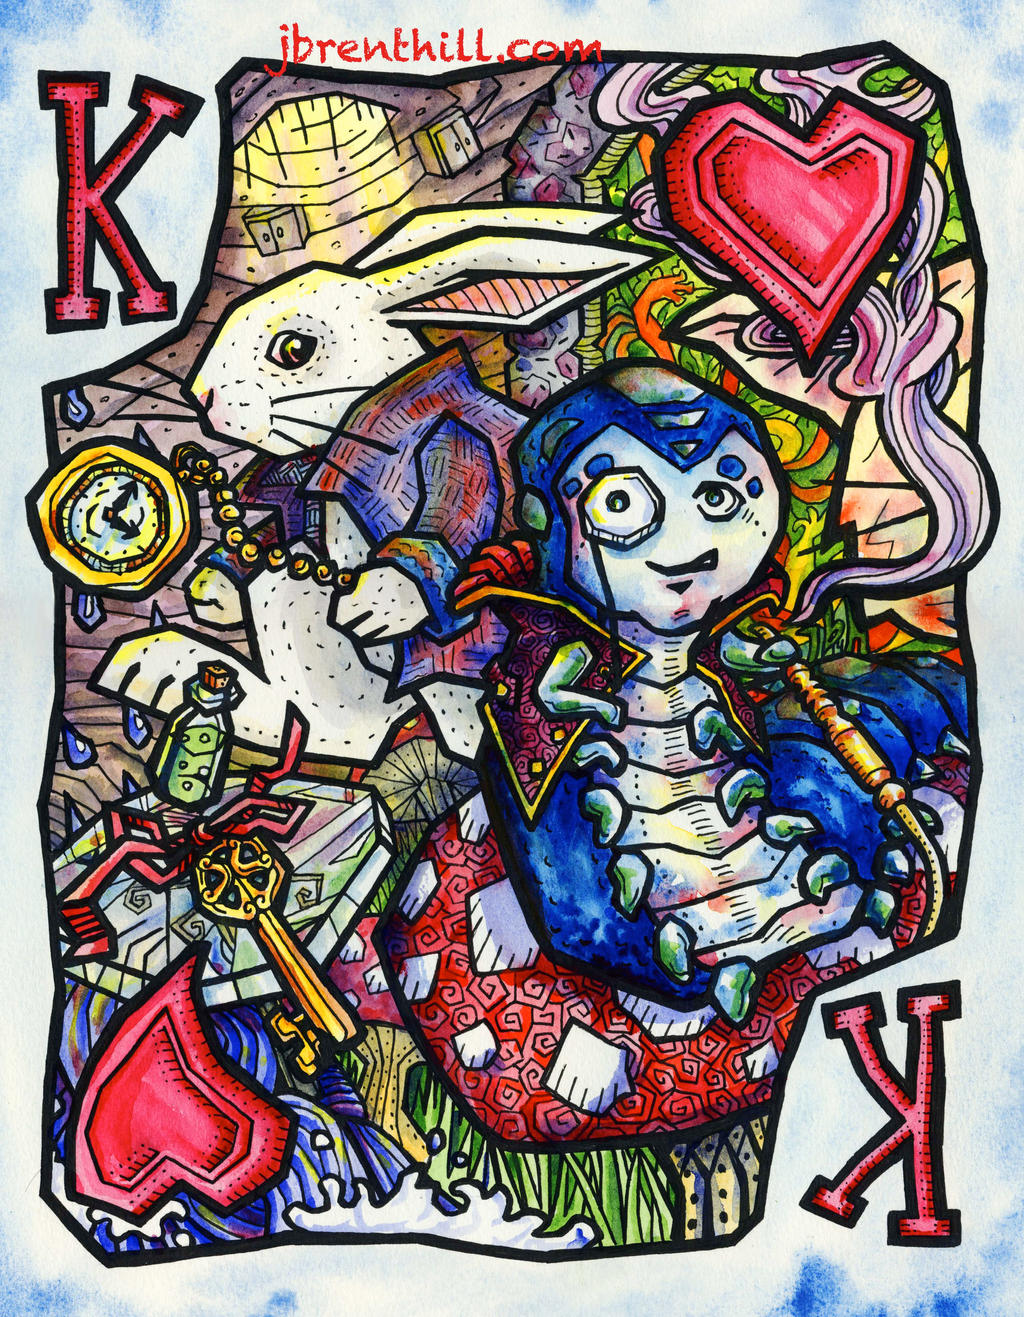 Wonderland King Card by jbrenthill